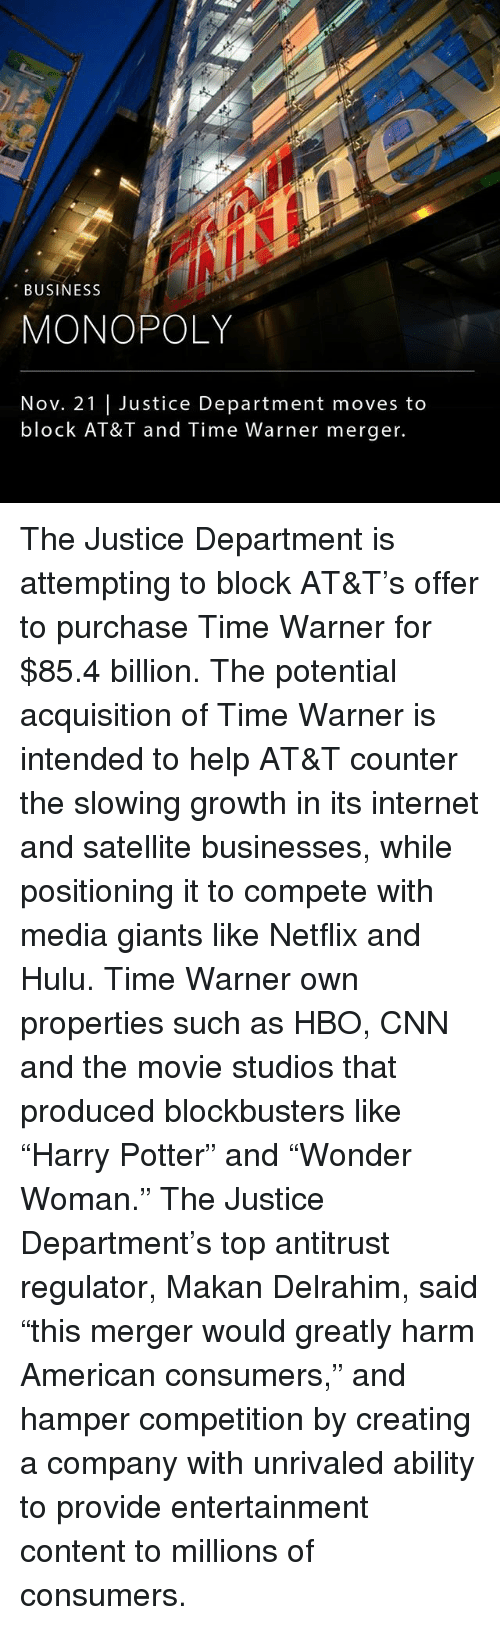 an introduction to the merge of media giant time warner and america on line Any day now, the department of justice will announce whether the at&t-time warner mega-merger will be permitted and anyone with a cell phone, a cable subscription, or an internet connection has a huge stake in this decision.